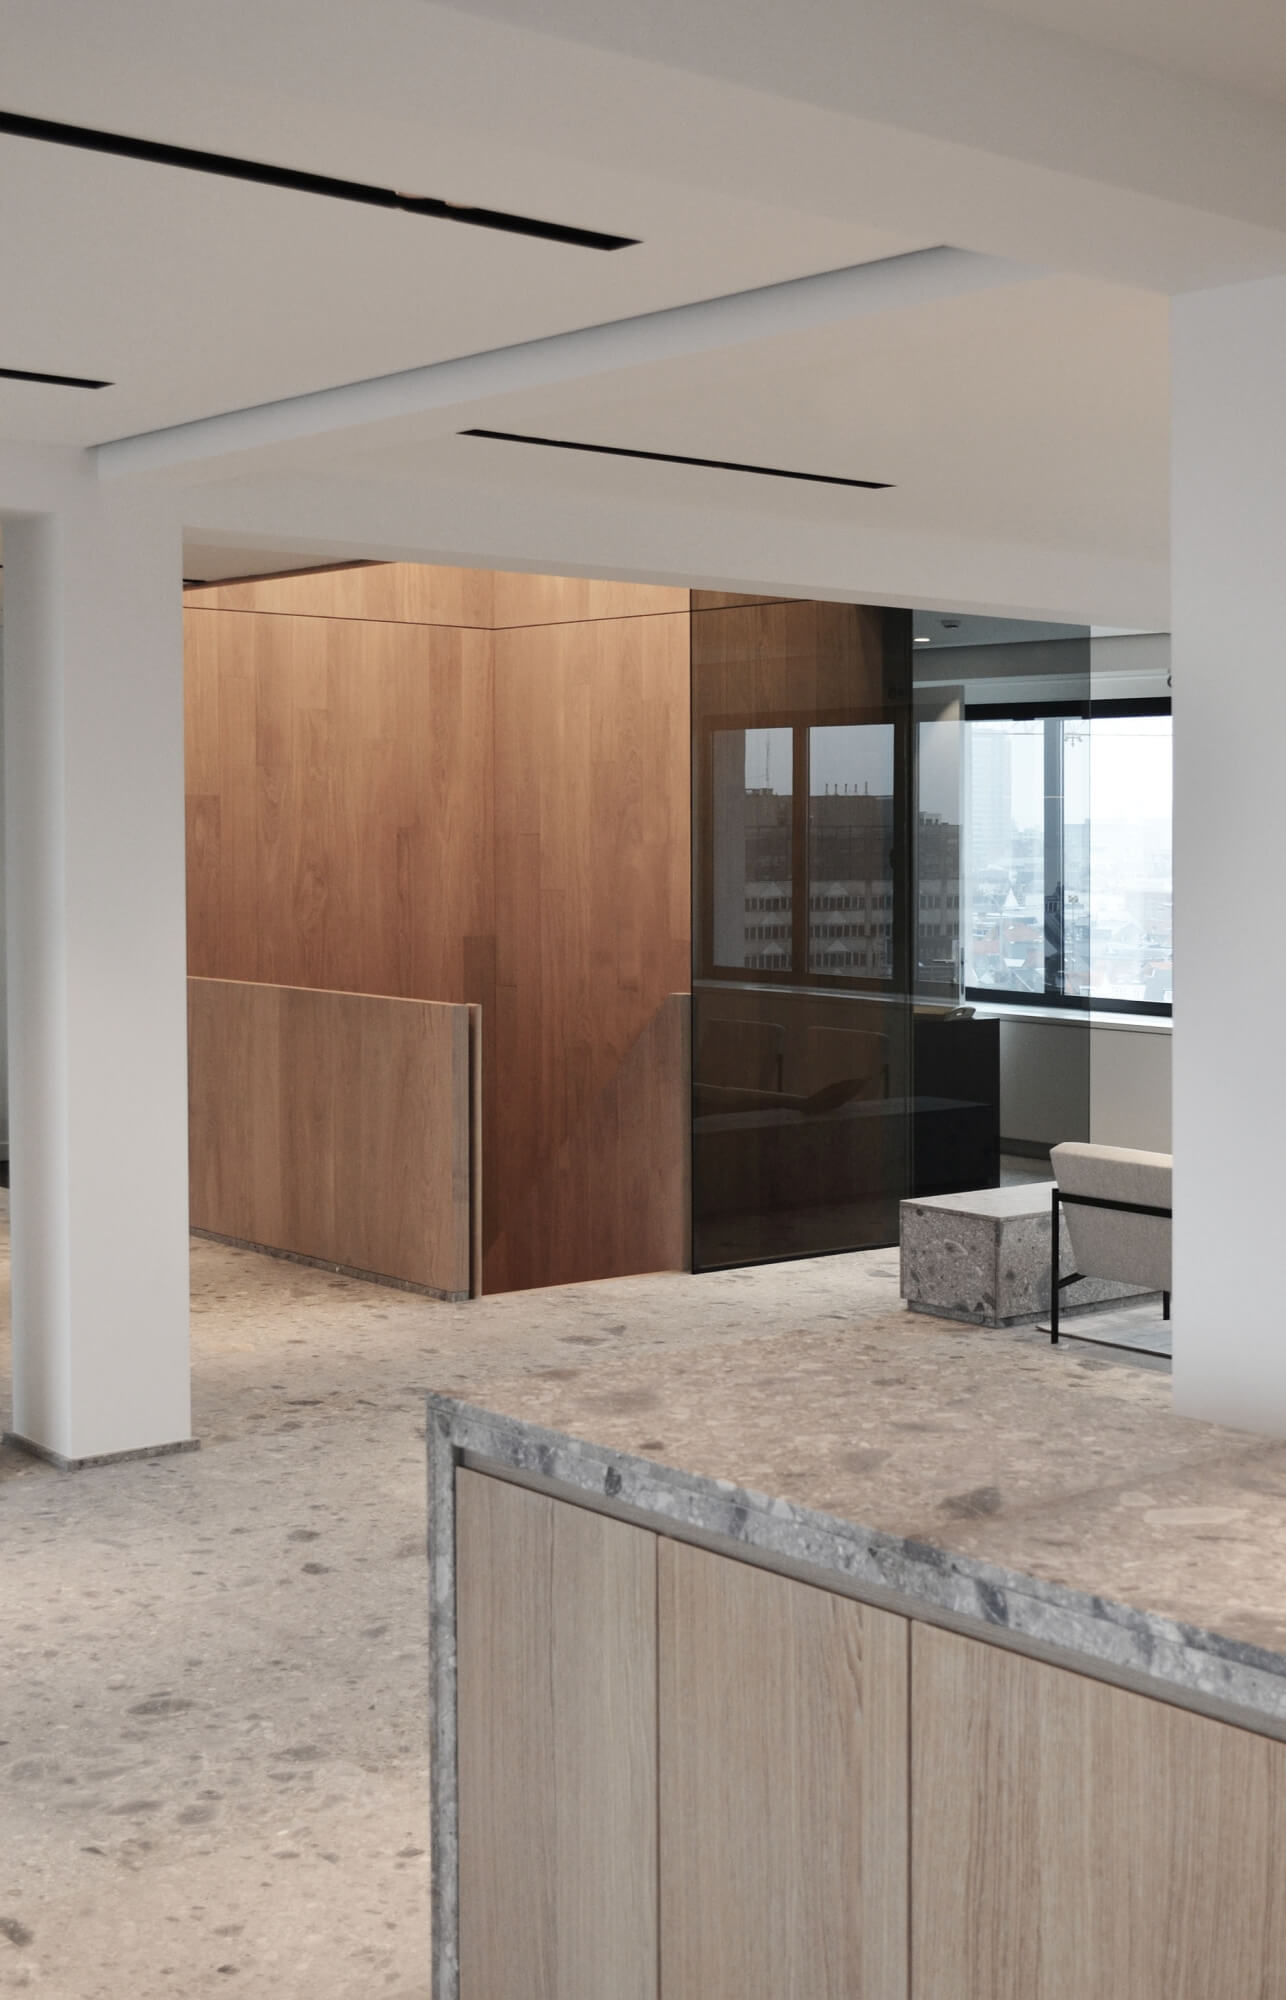 Interior designed office space with wood and stone elements.